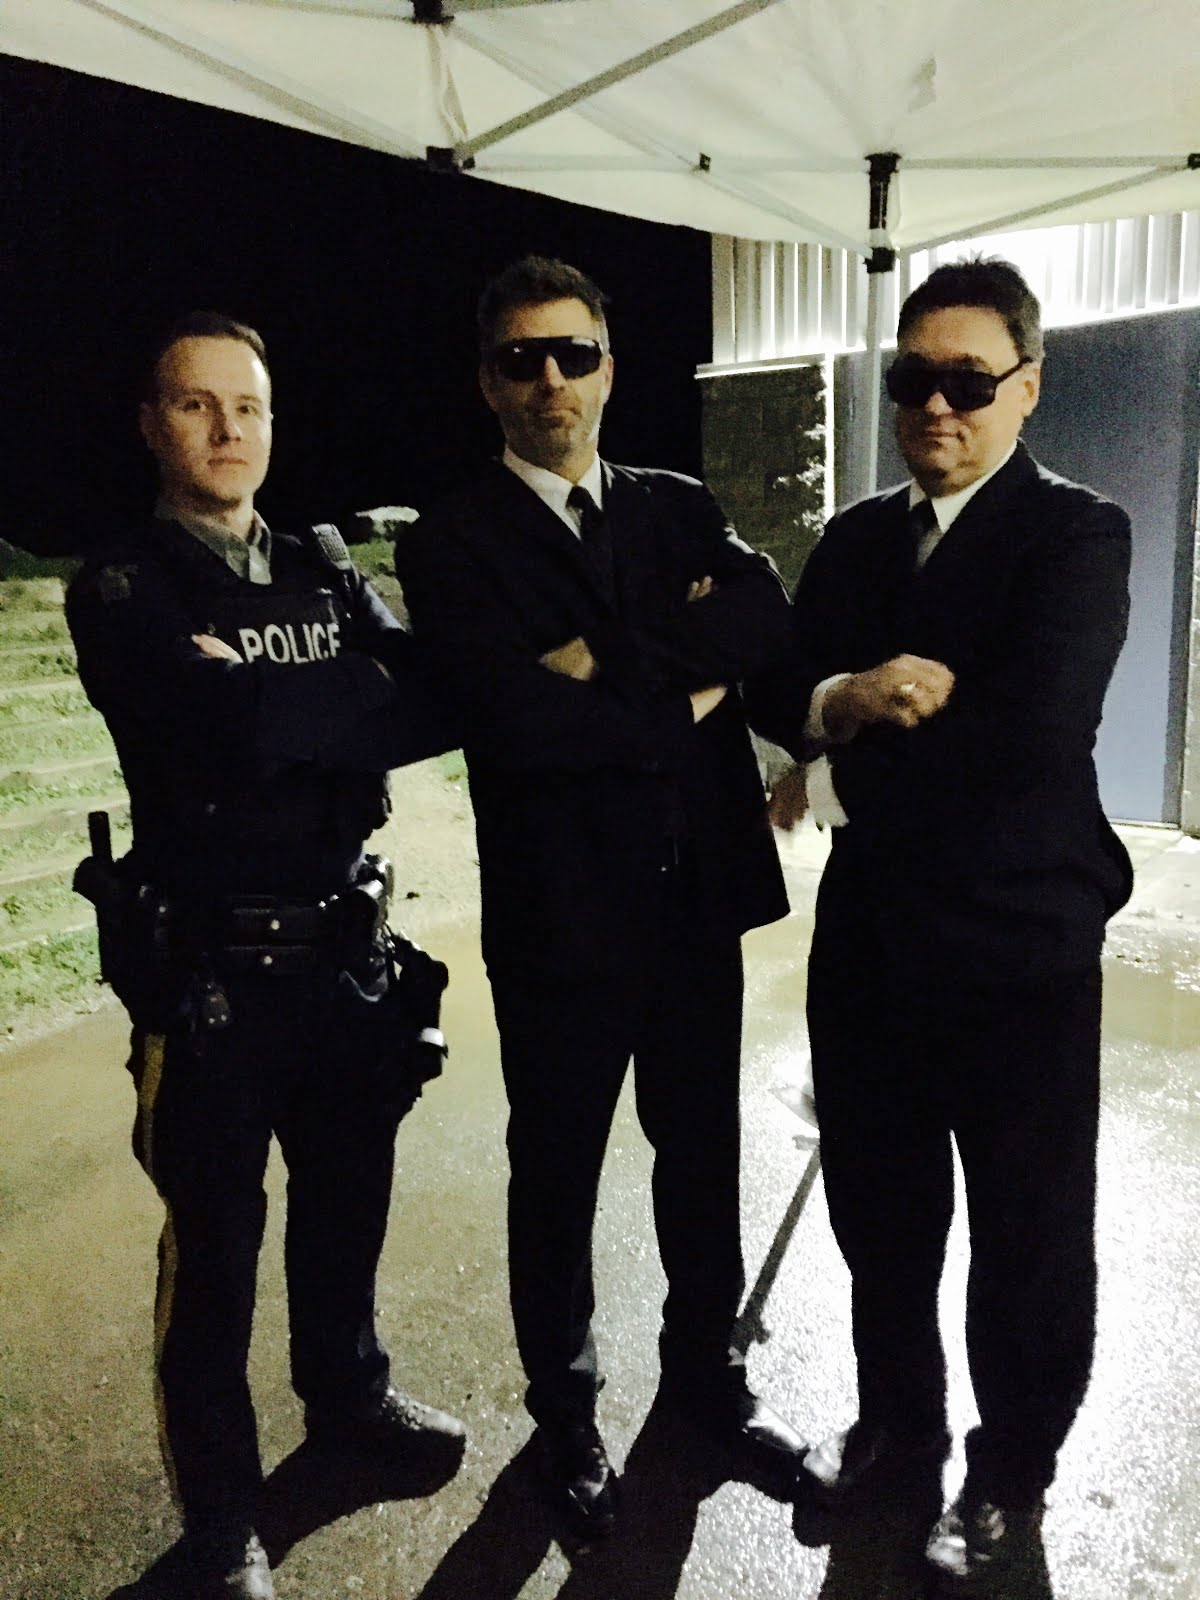 Winter Formal Security